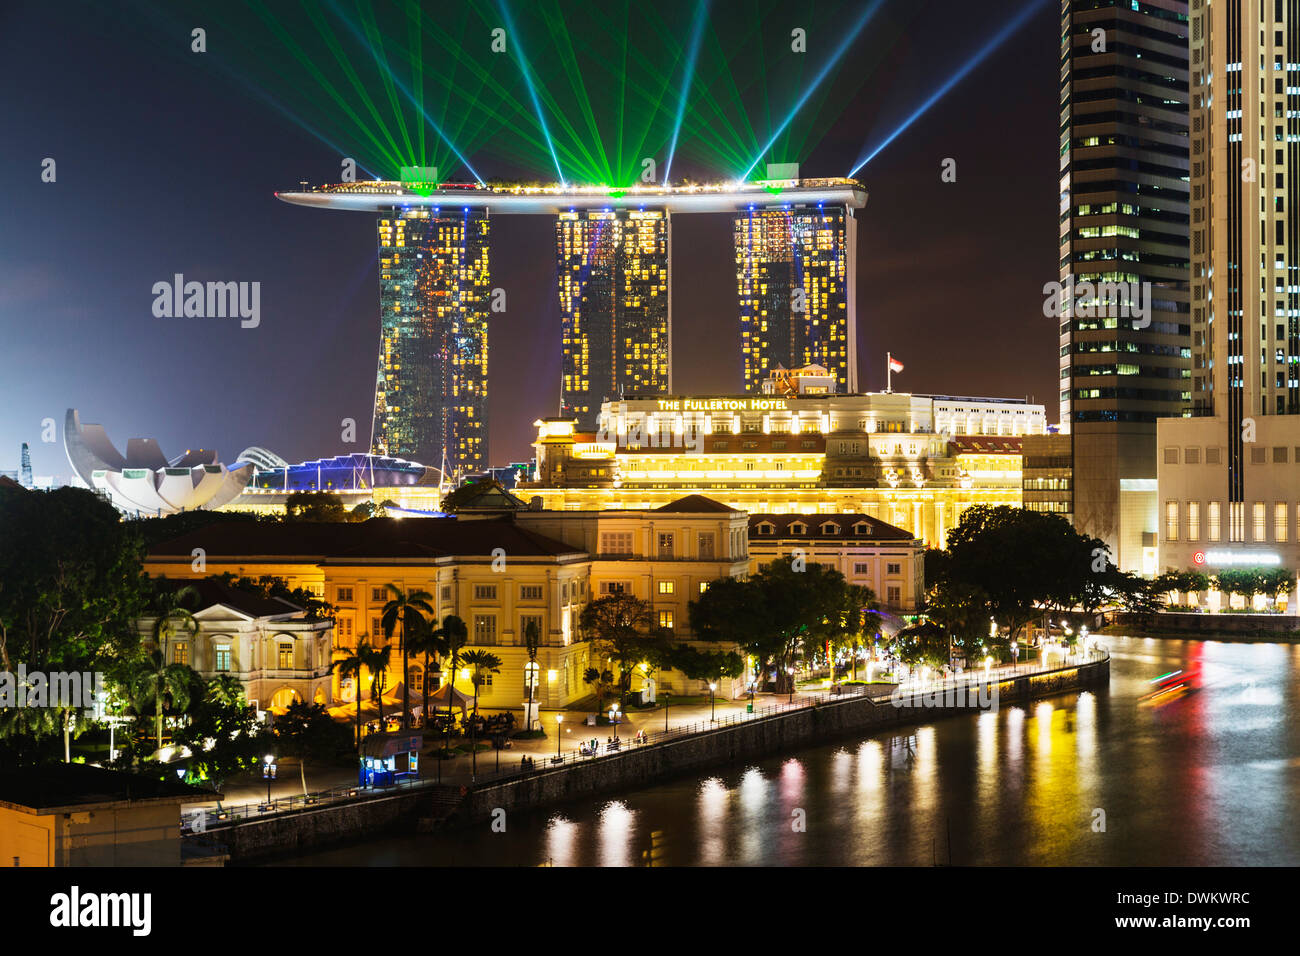 Marina Bay Sands Hotel and Fullerton Hotel, Singapore, Southeast Asia, Asia - Stock Image